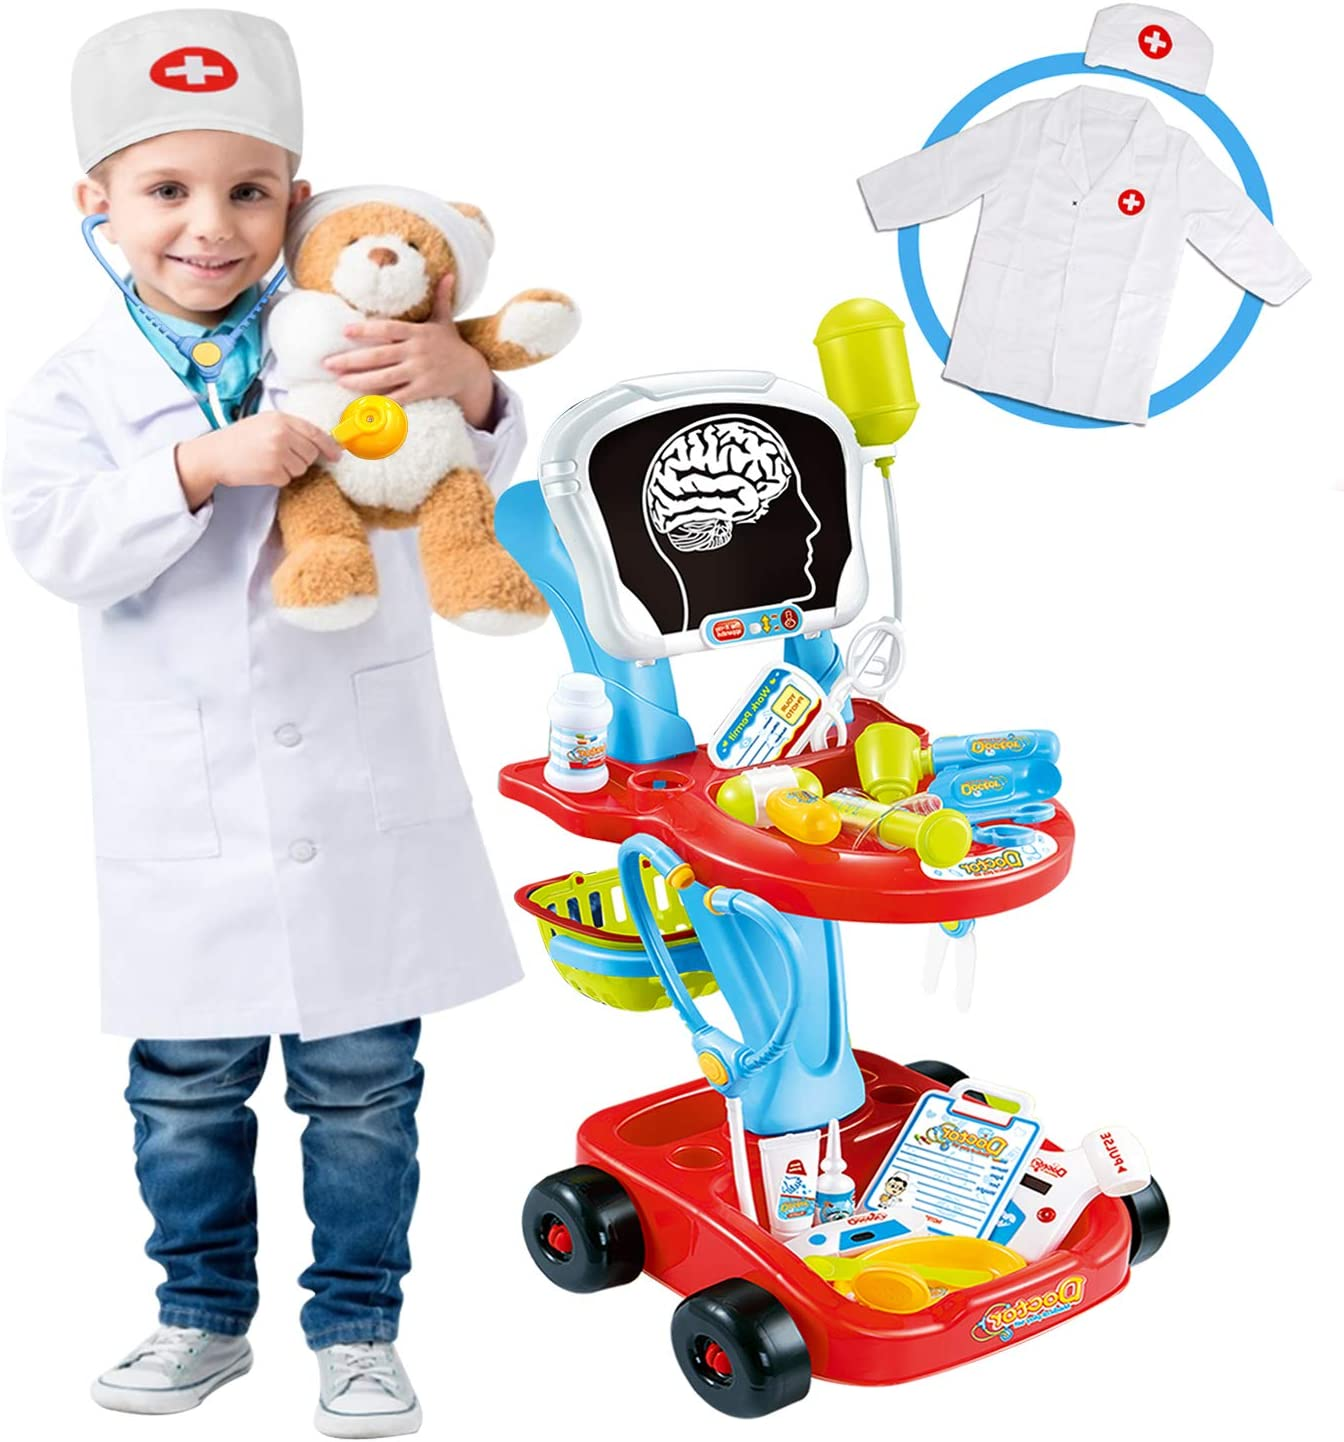 Doctor Cart Kit for Kids New Free Shipping Beauty products with Stethoscope CoatLight X